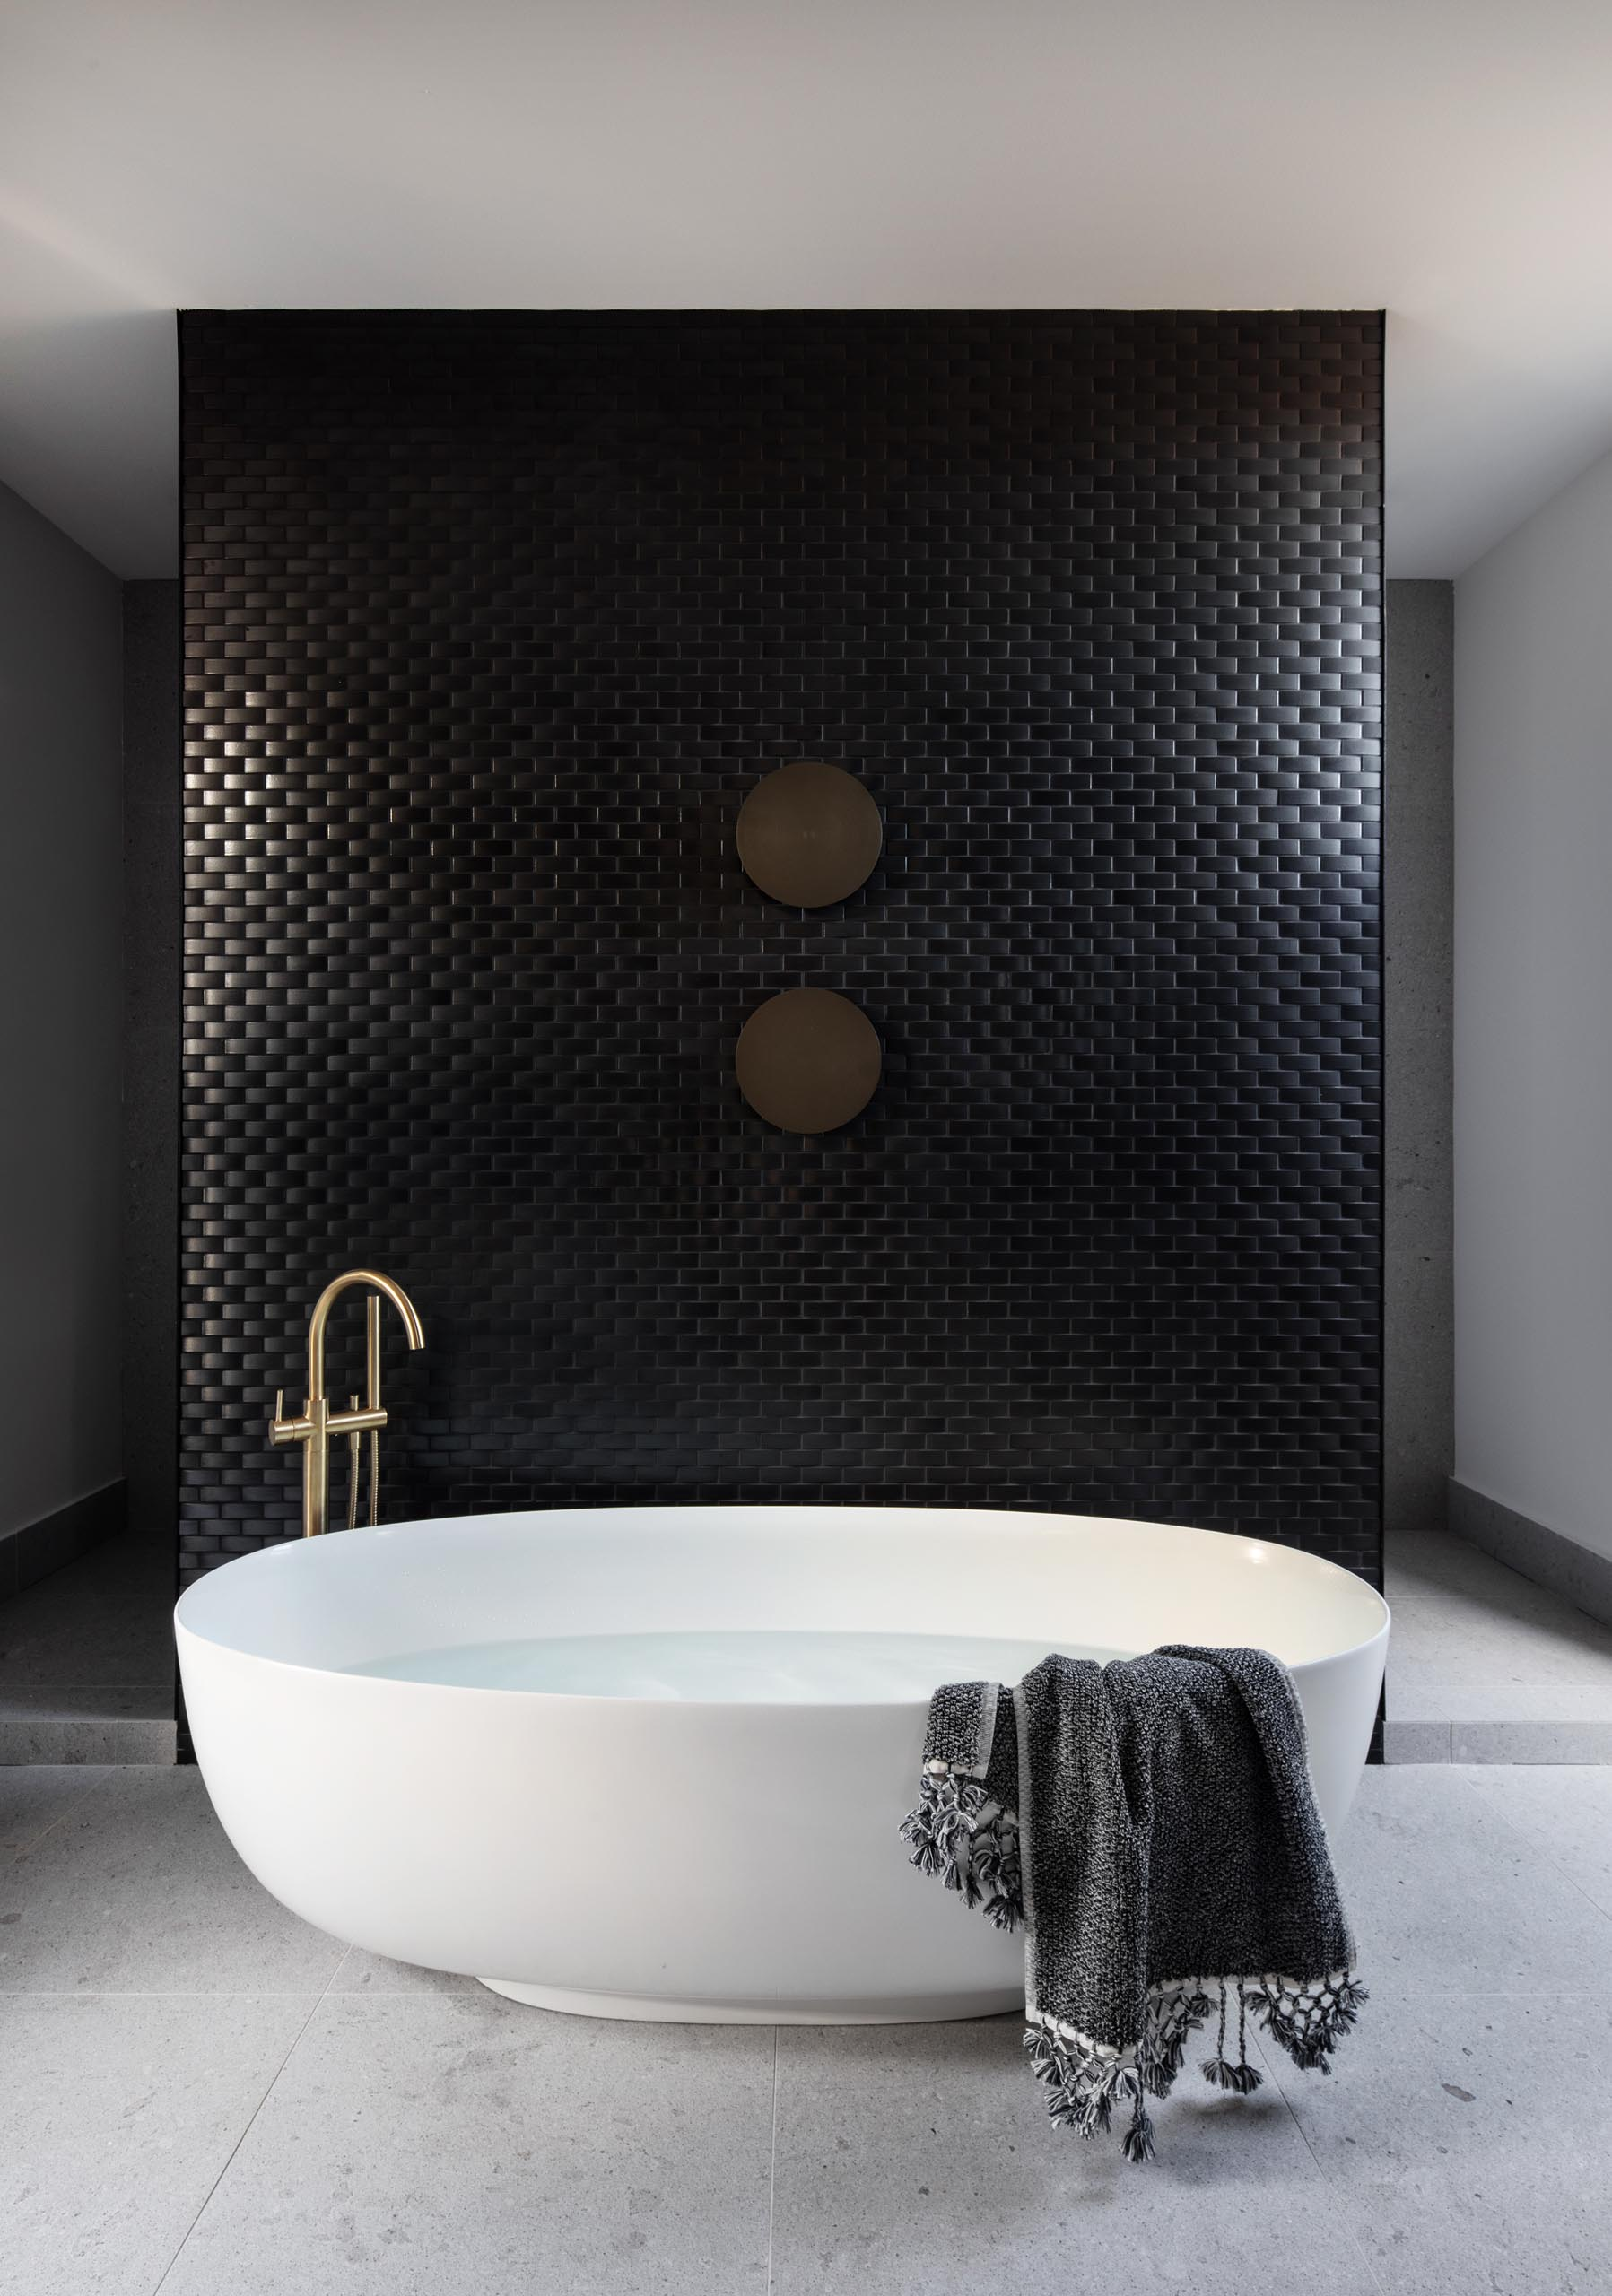 A modern bathroom with a black tile accent wall that provides a backdrop for a large oval freestanding bathtub.